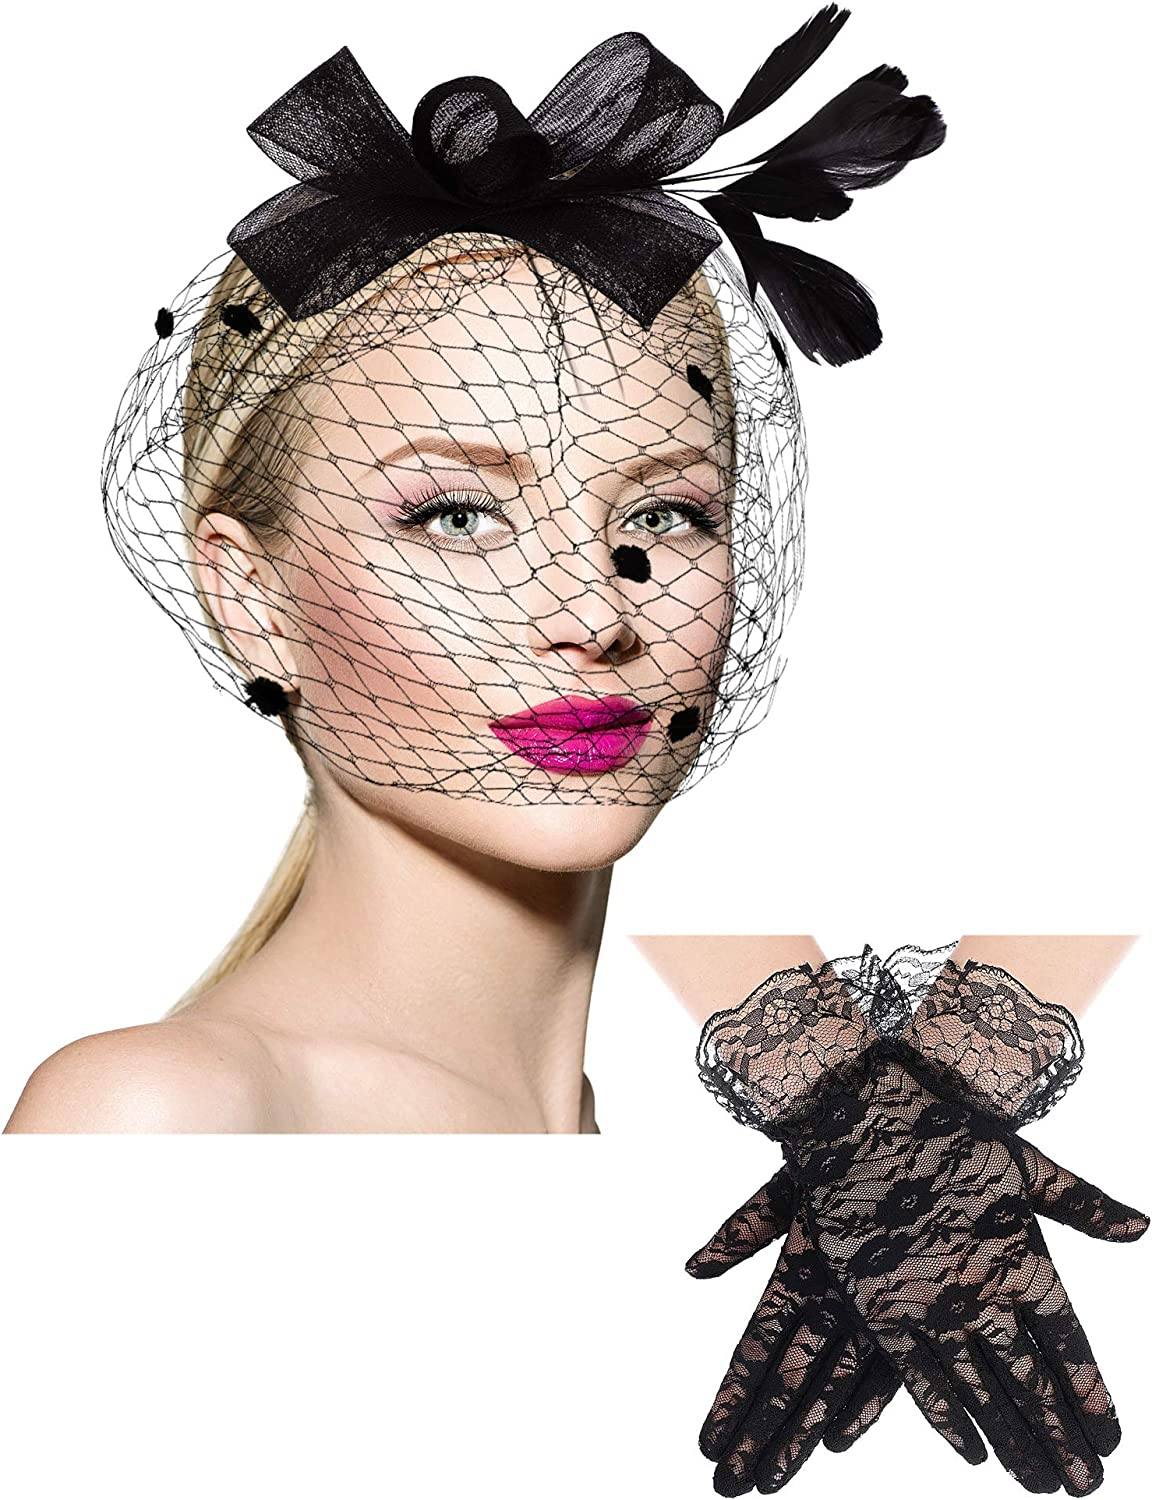 Feather Veil Mesh Hat Short Lace Glove 50s Costume Accessories for Women Wedding